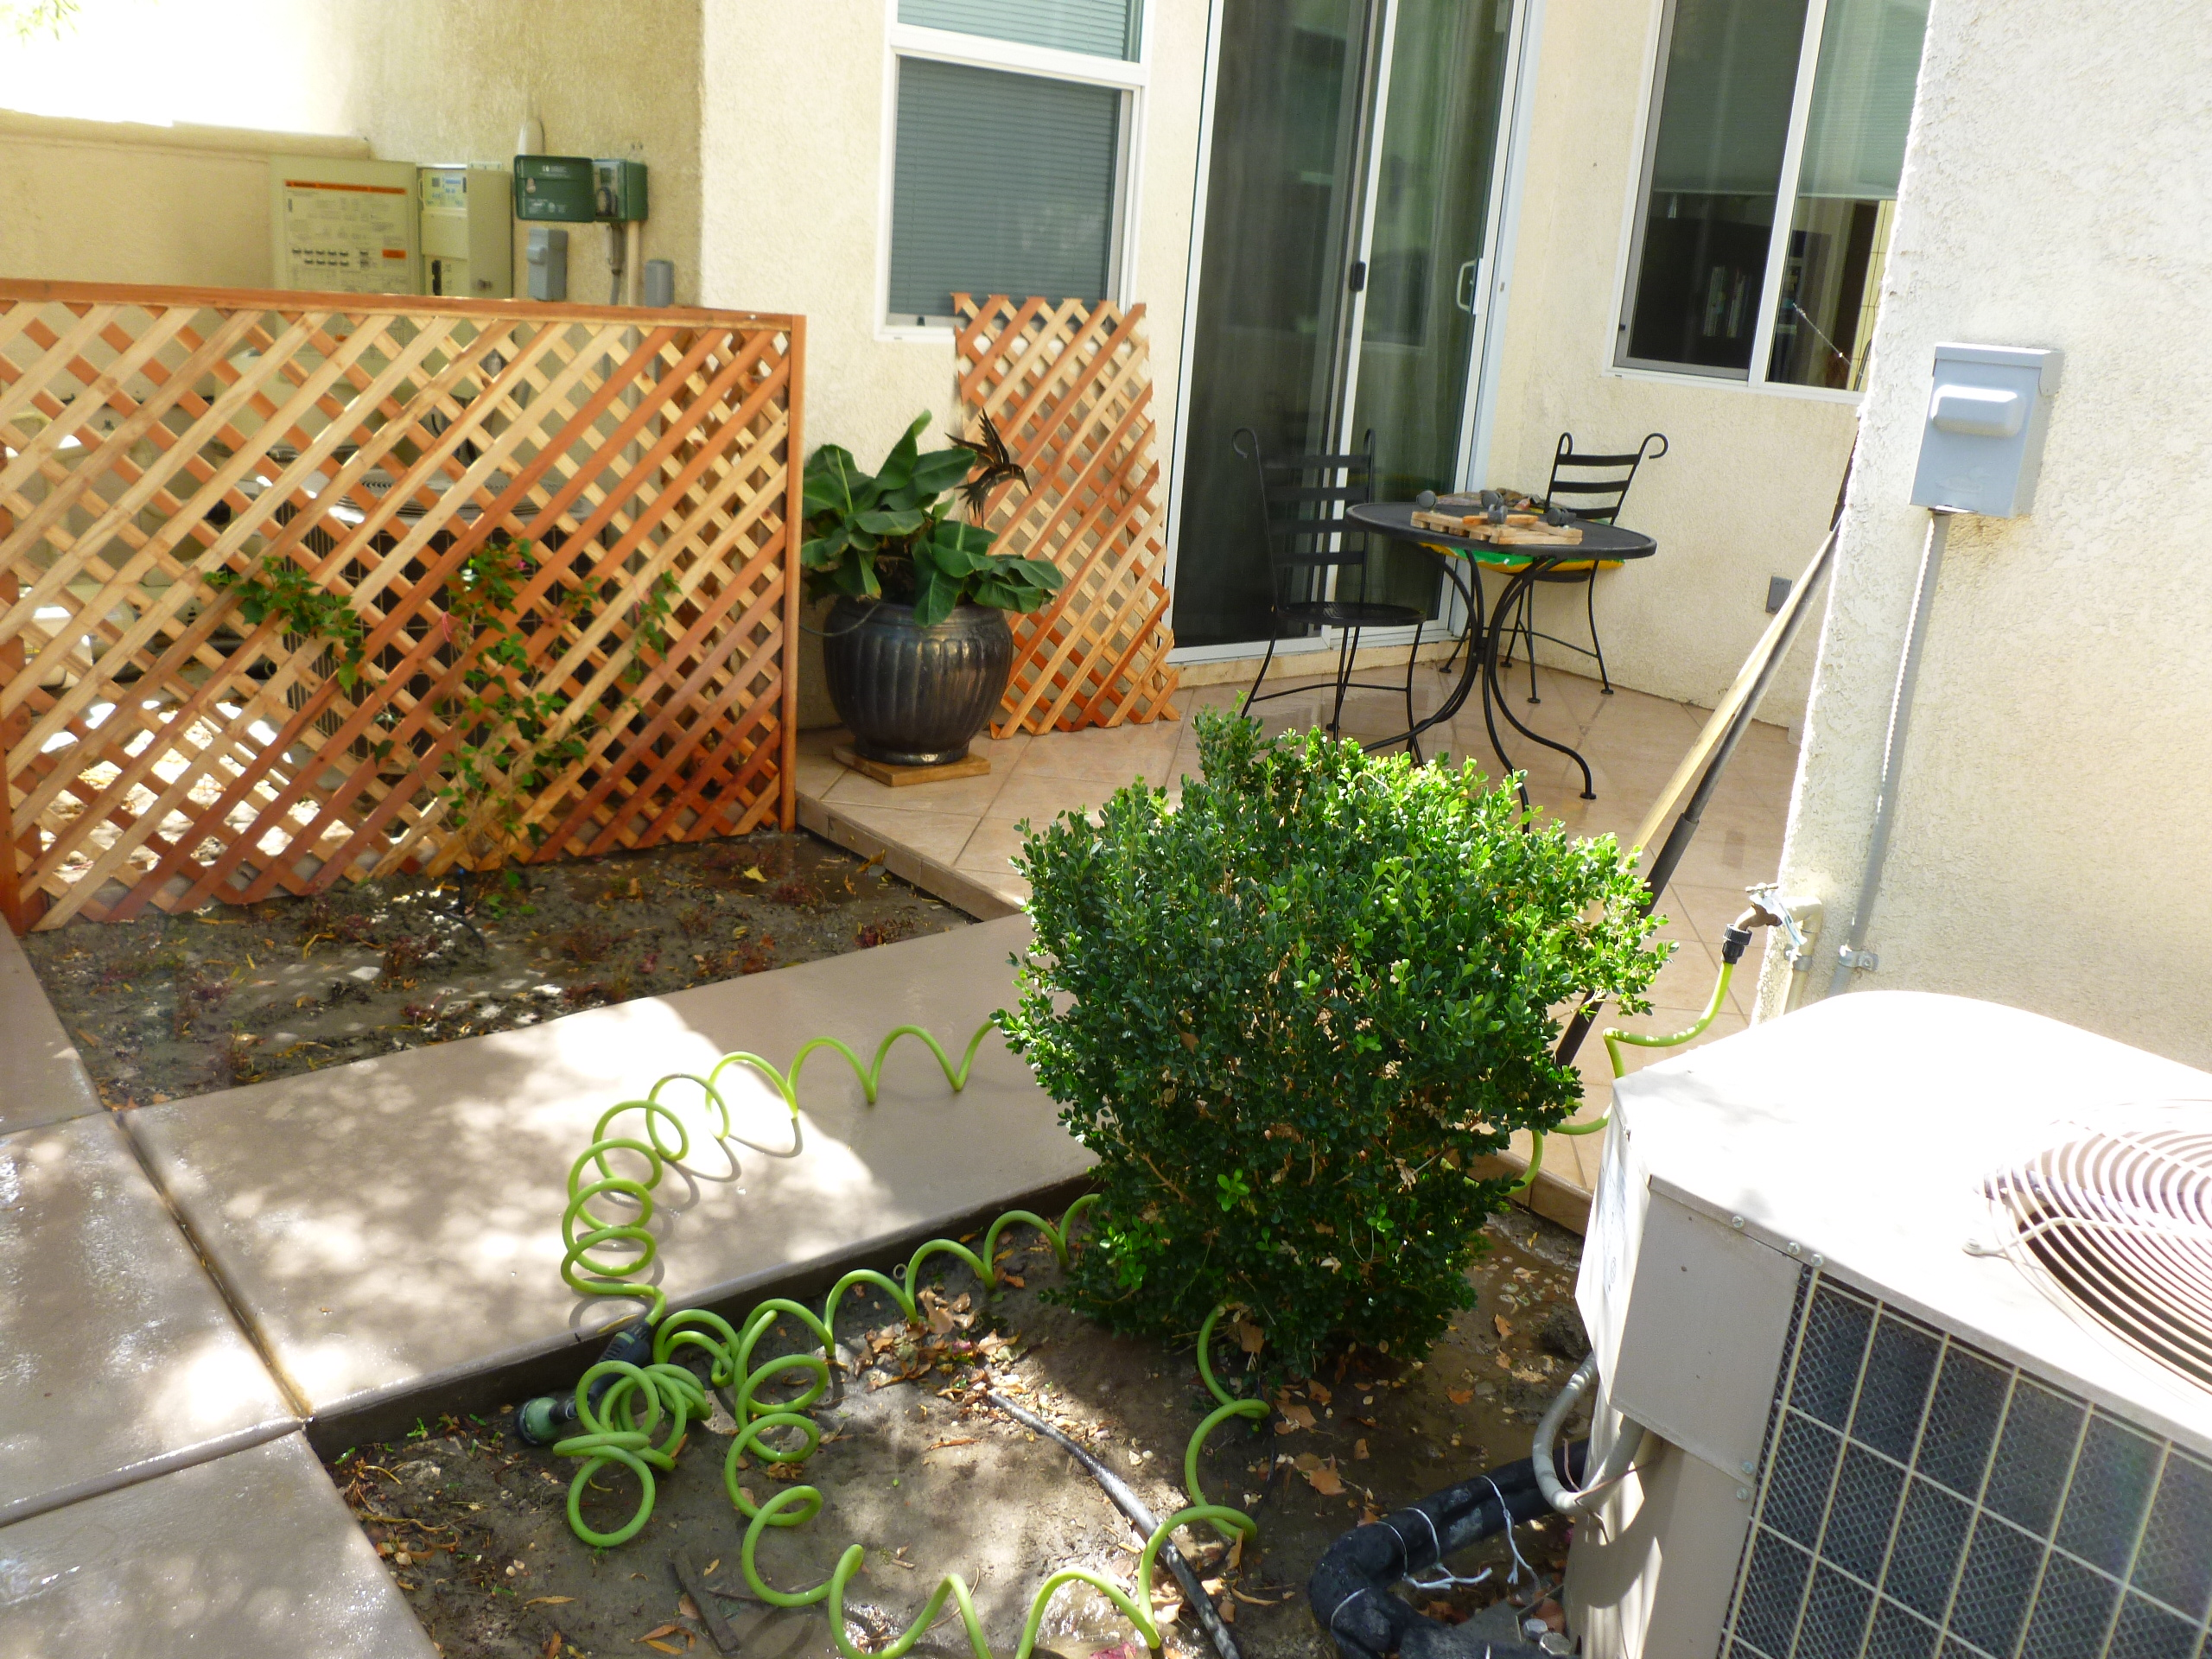 Landscaping Ideas To Hide Pool Equipment pool storage ideas And Gate To Hide The Pool Equipment Then We Needed Landscaping